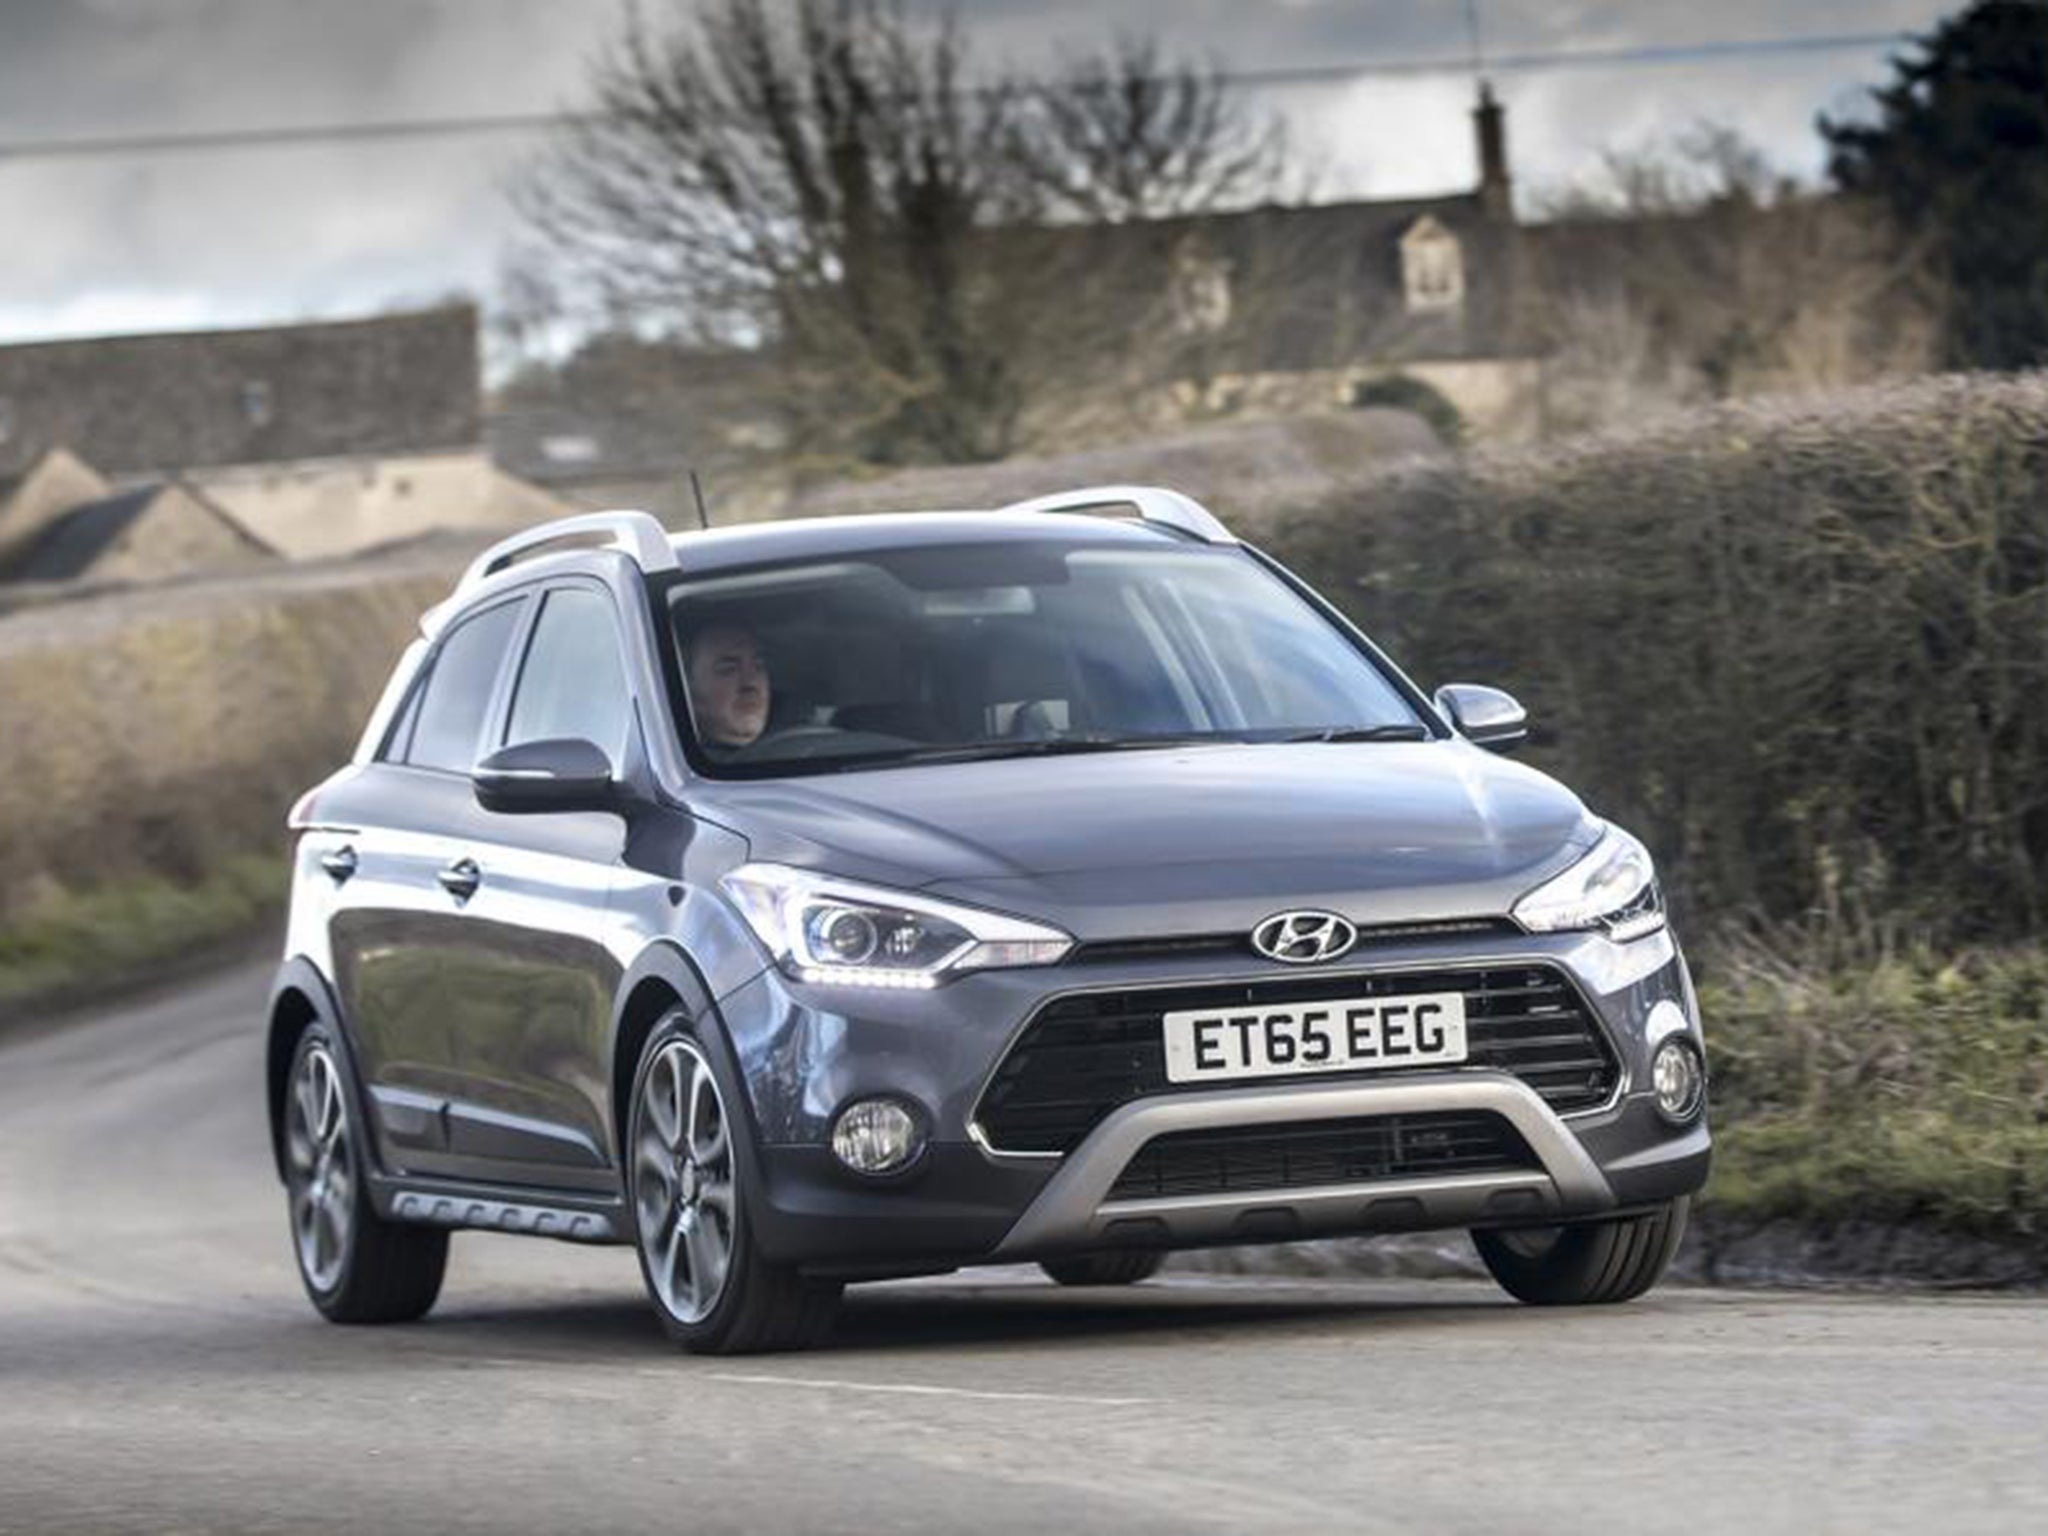 2016 hyundai i20 active 1 0 t gdi 100 car review hyundai becomes competitor for cars like the. Black Bedroom Furniture Sets. Home Design Ideas